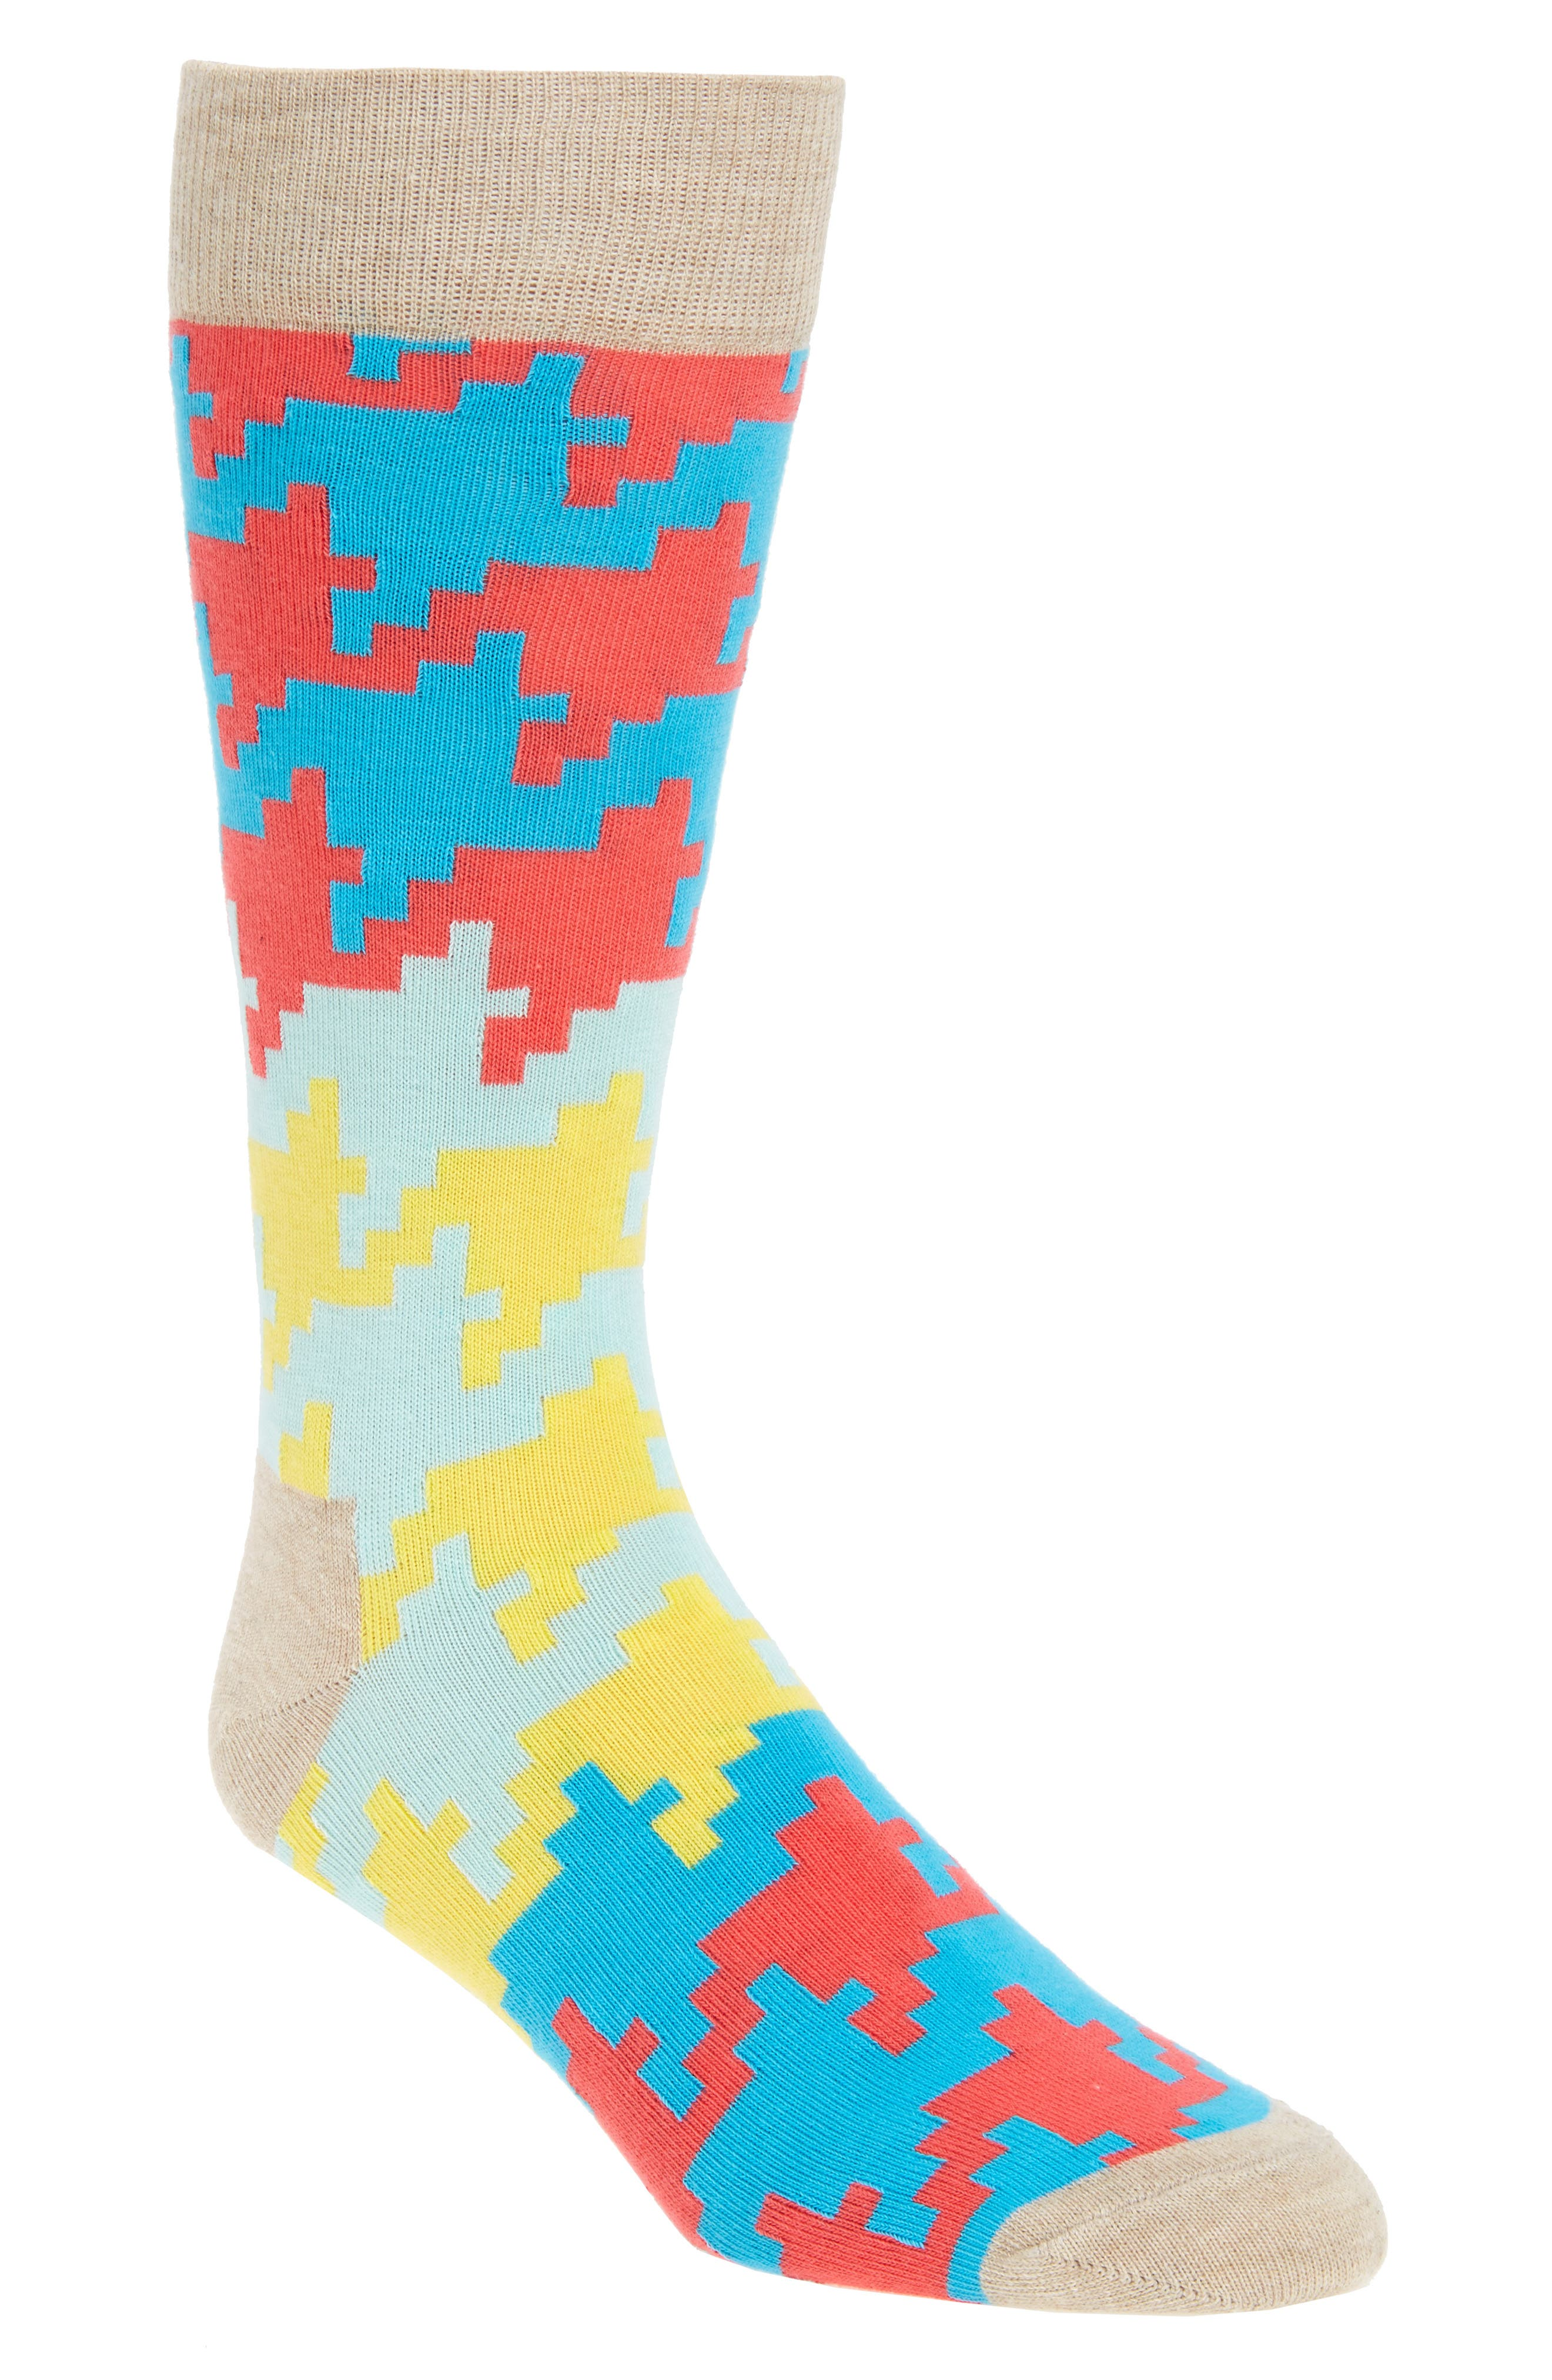 Happy Socks Digital Houndstooth Socks